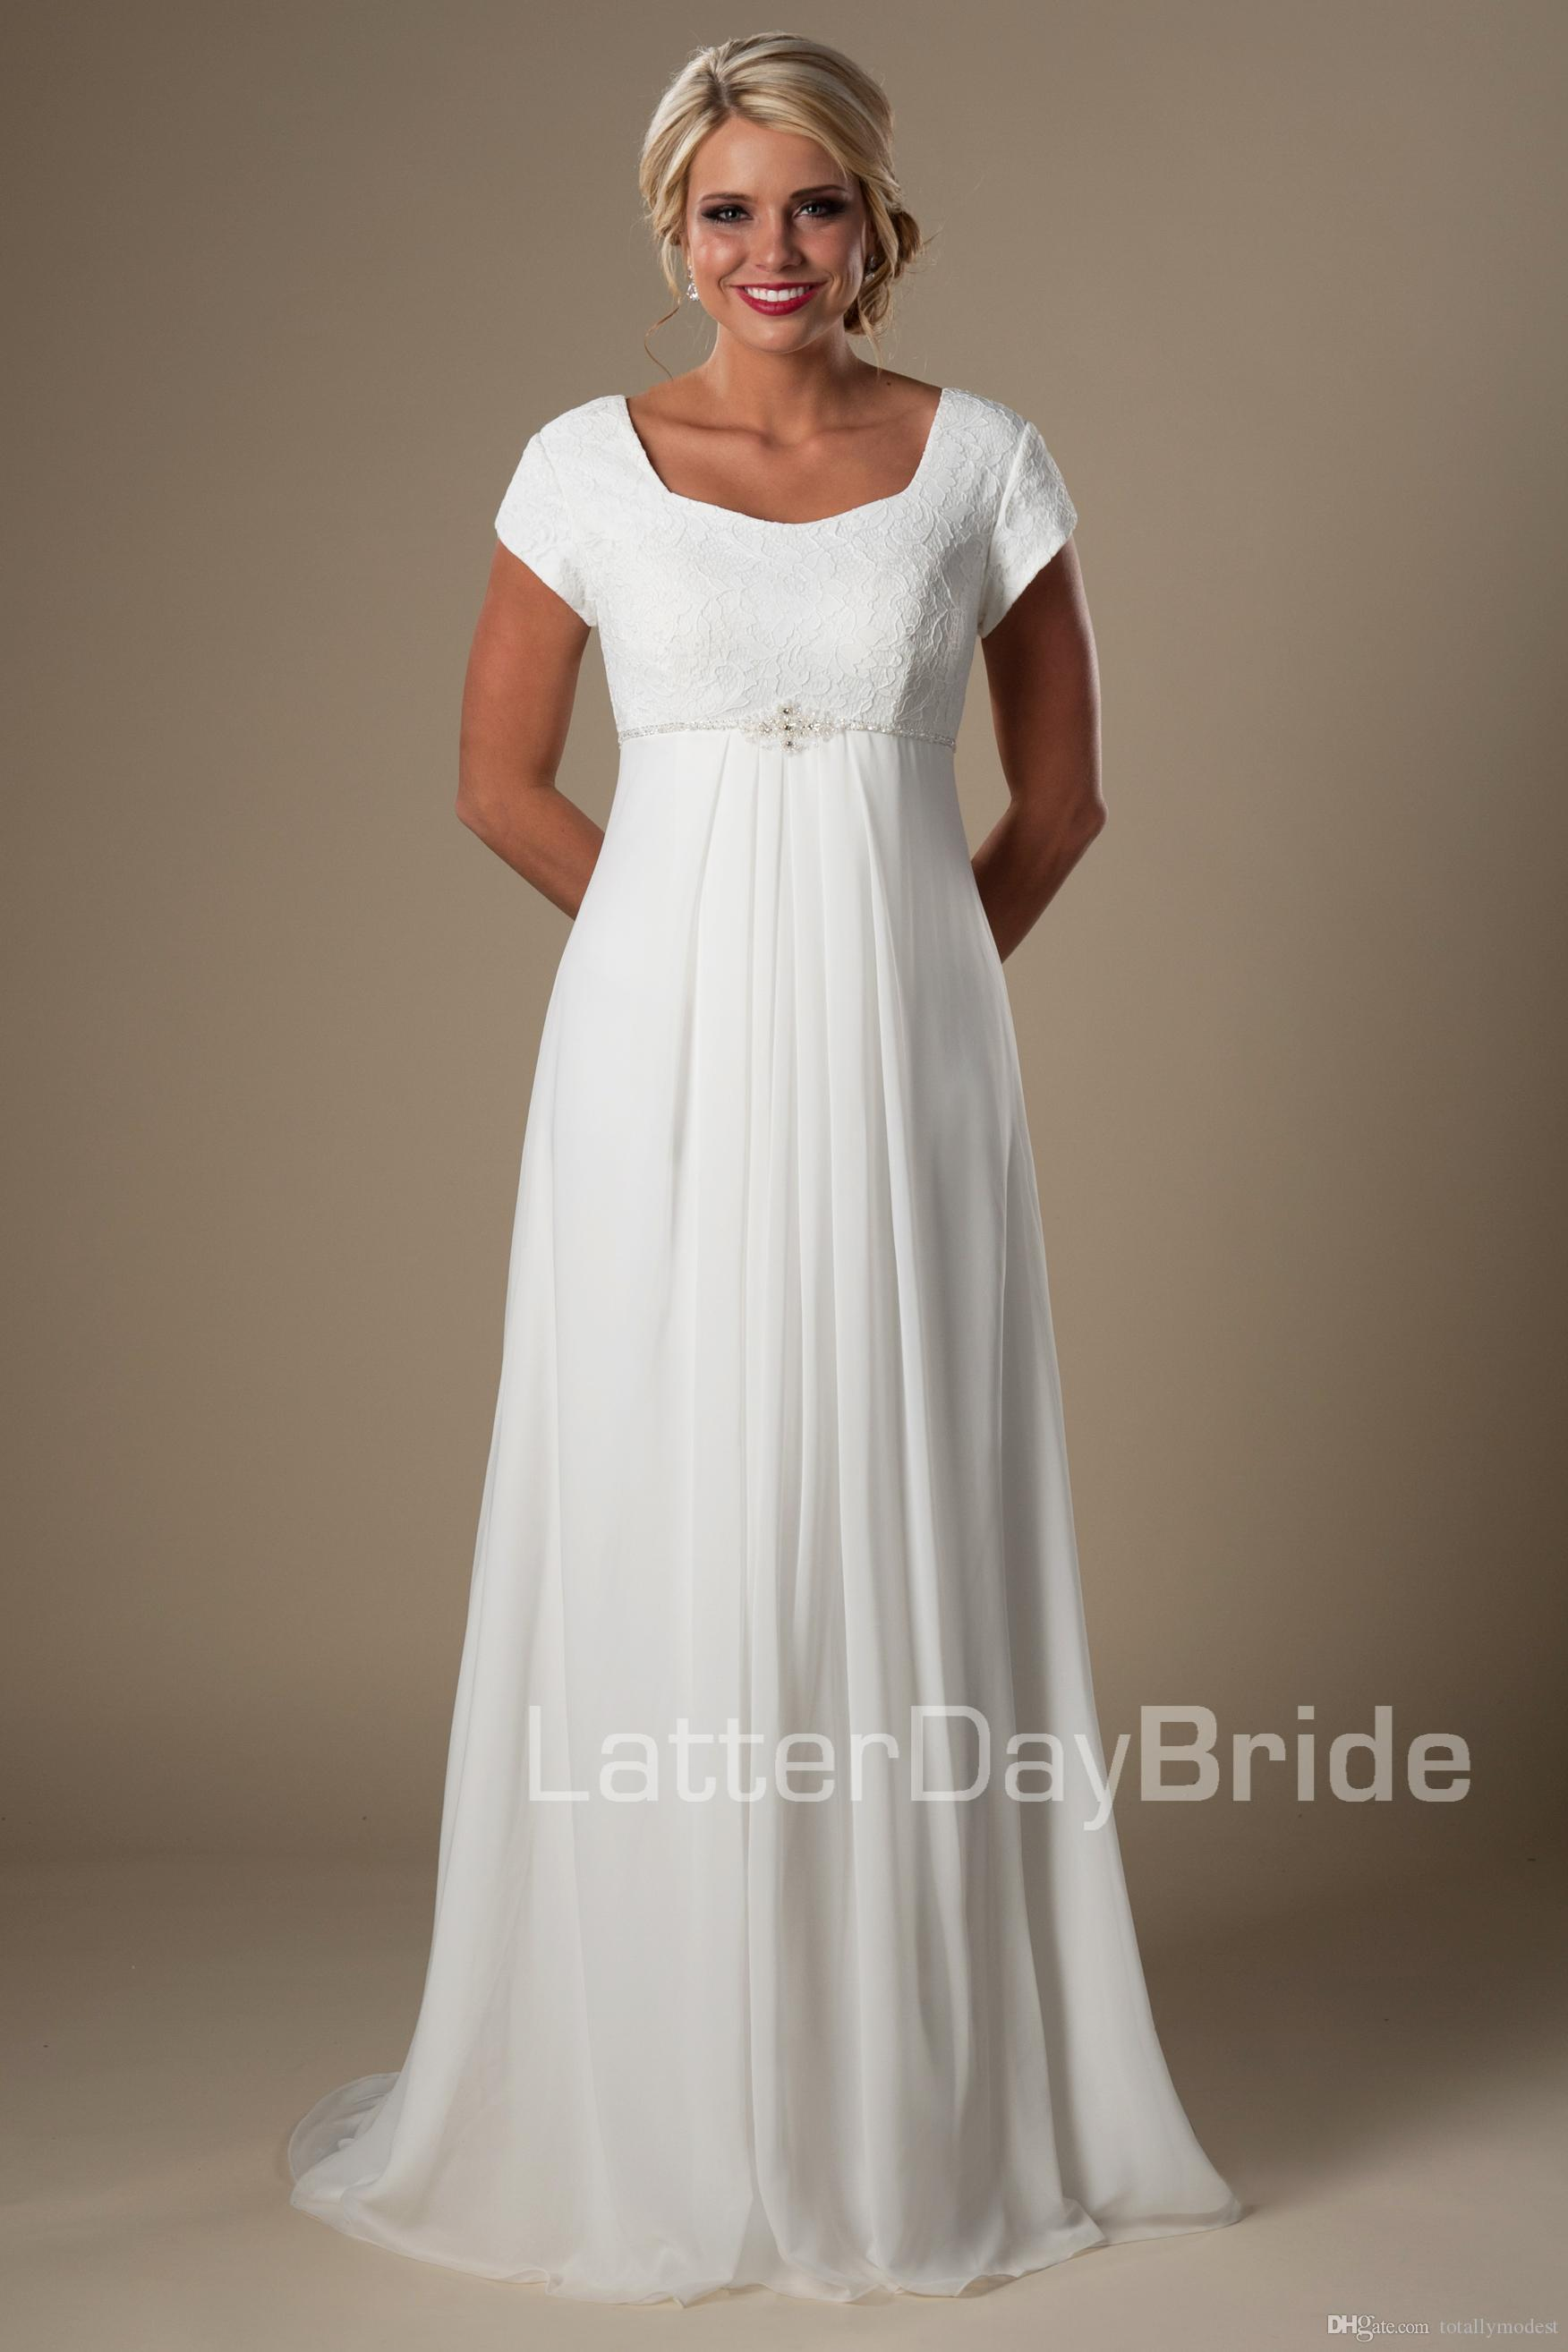 Informal Ivory Lace Chiffon Beach Modest Wedding Dresses With Cap Sleeves A-line Temple Bridal Gowns Floor Length Wedding Gowns New